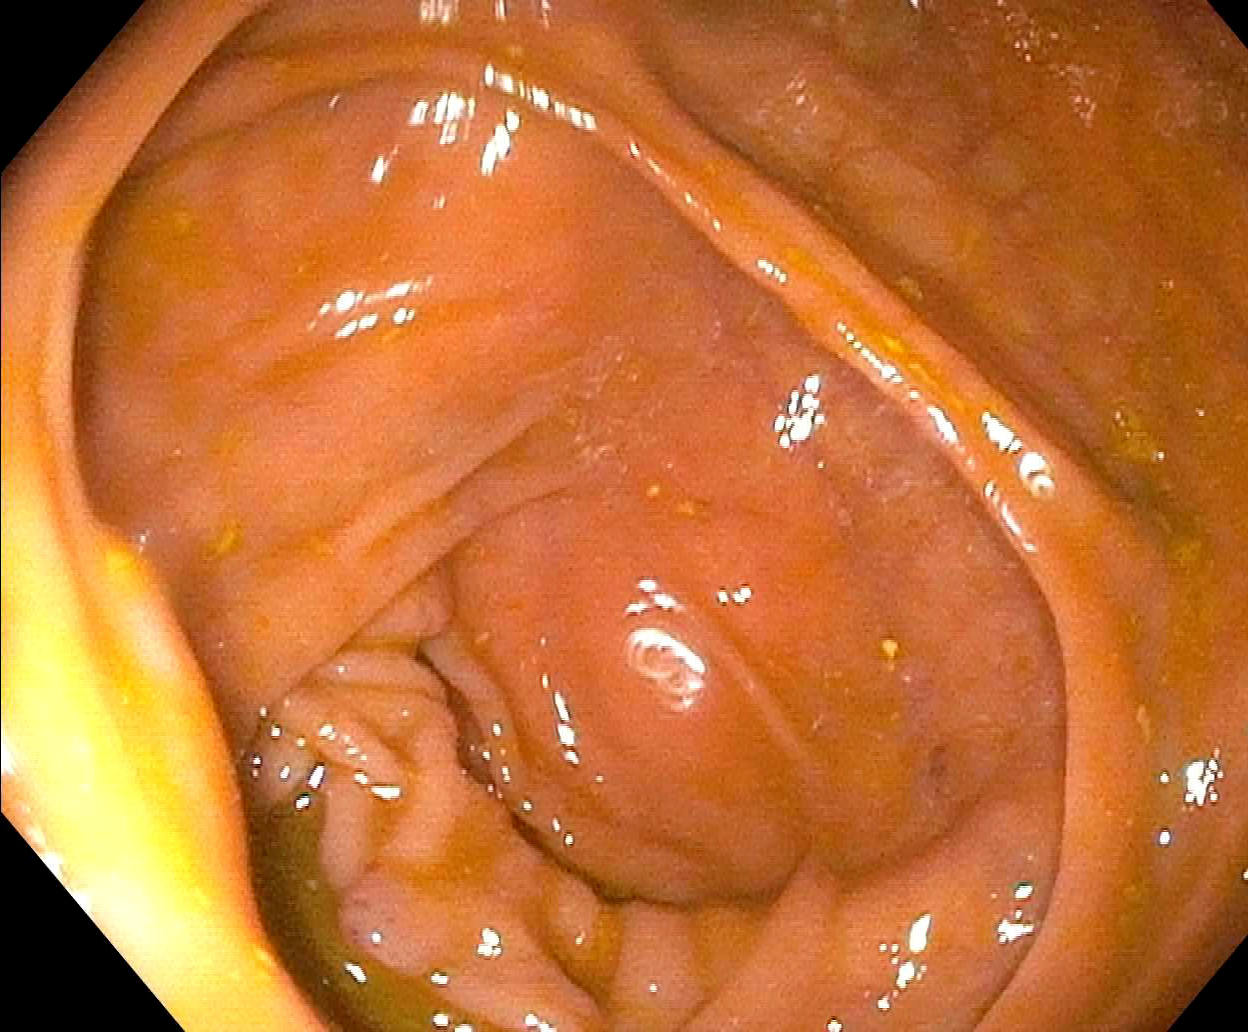 Endoscopic view of cecum